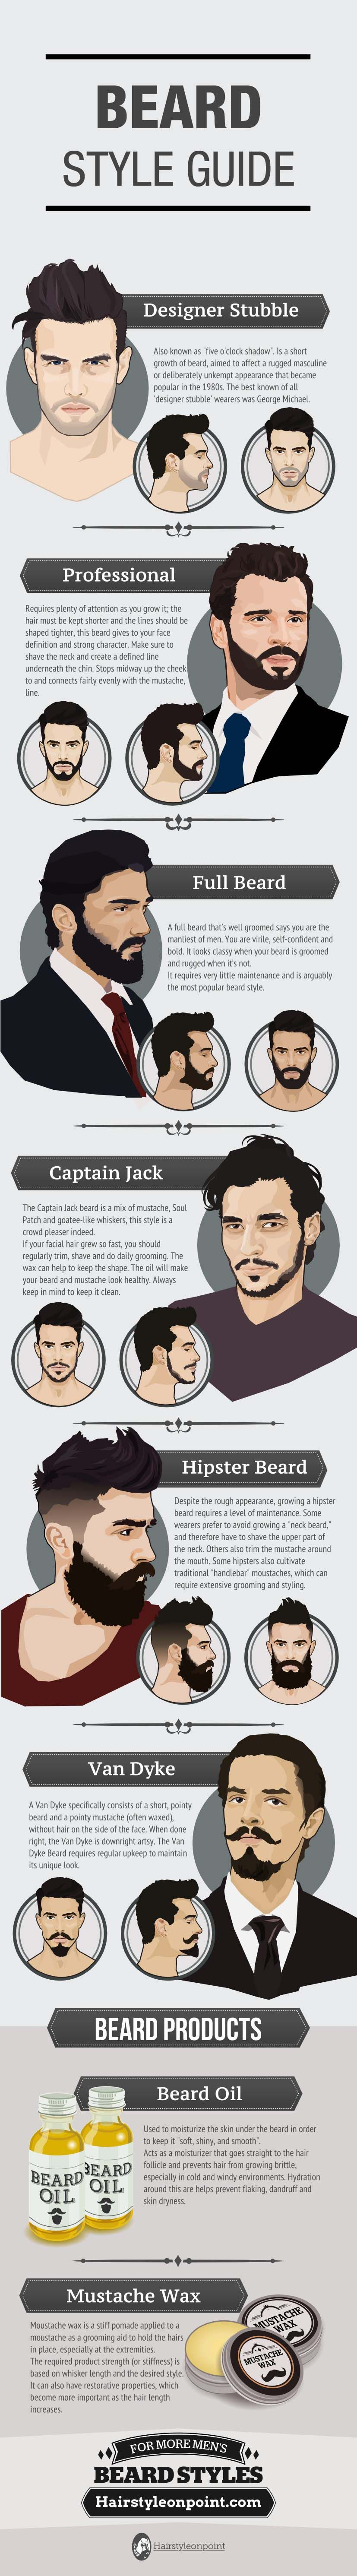 Names of mens haircuts everything you need to know about growing u styling your beard